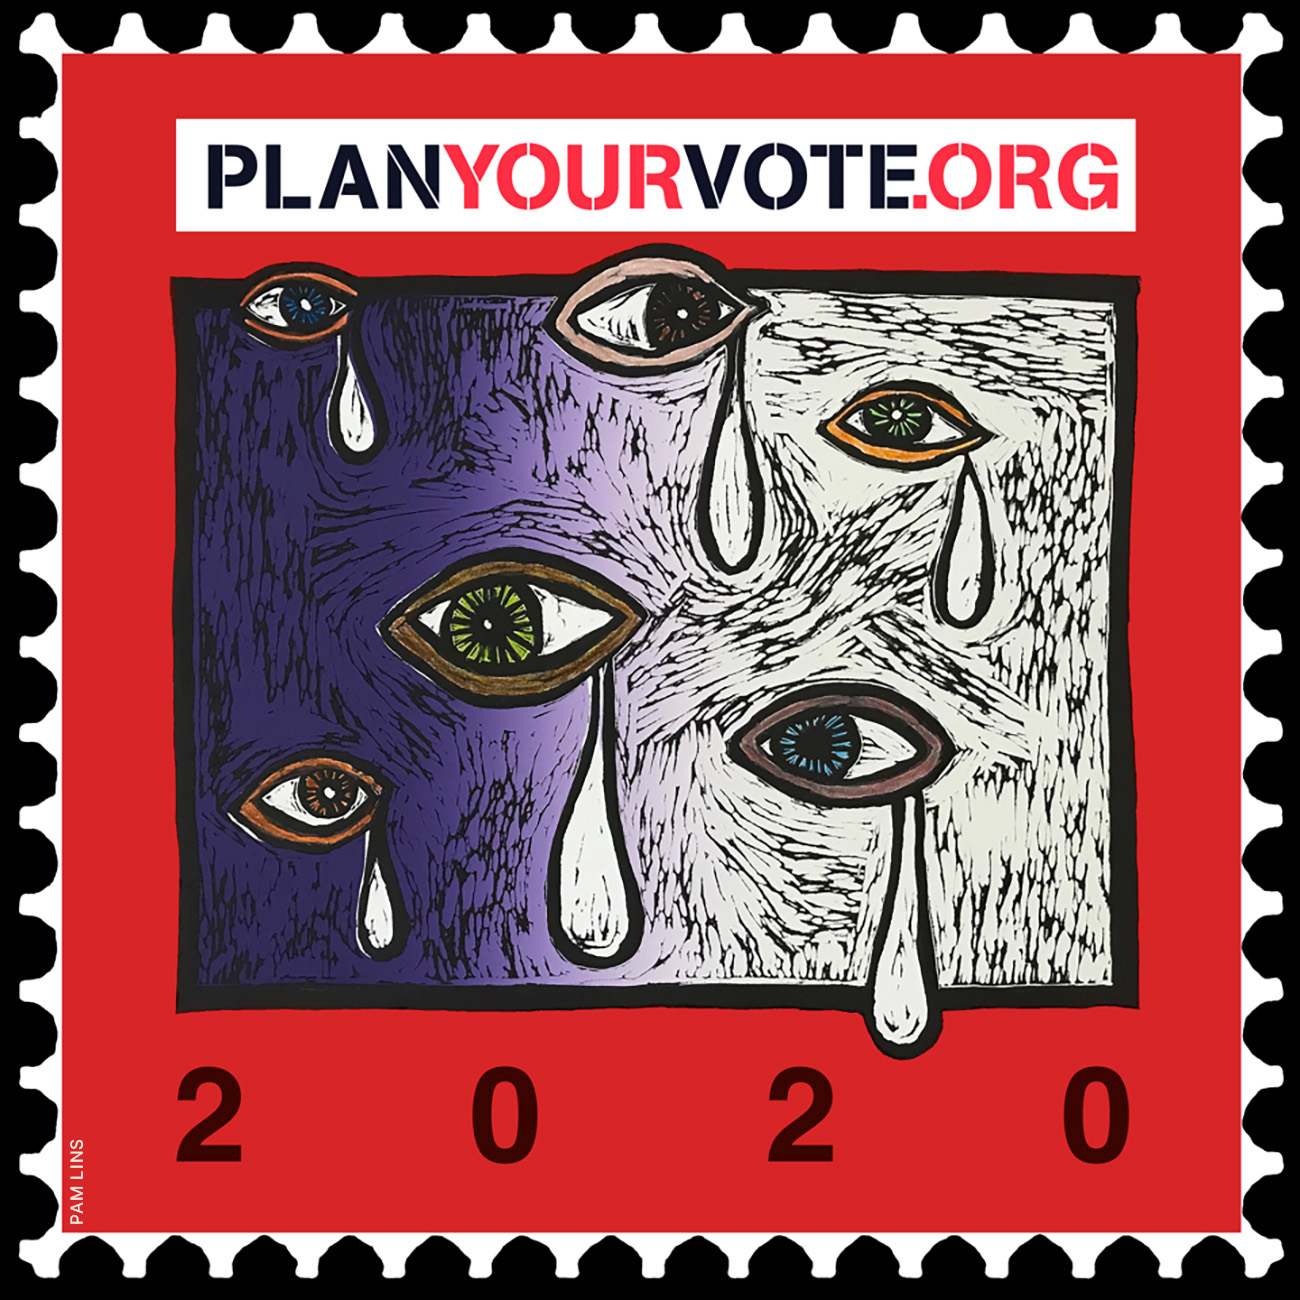 Pan Lins x Plan Your Vote (courtesy: Planyourvote.org).